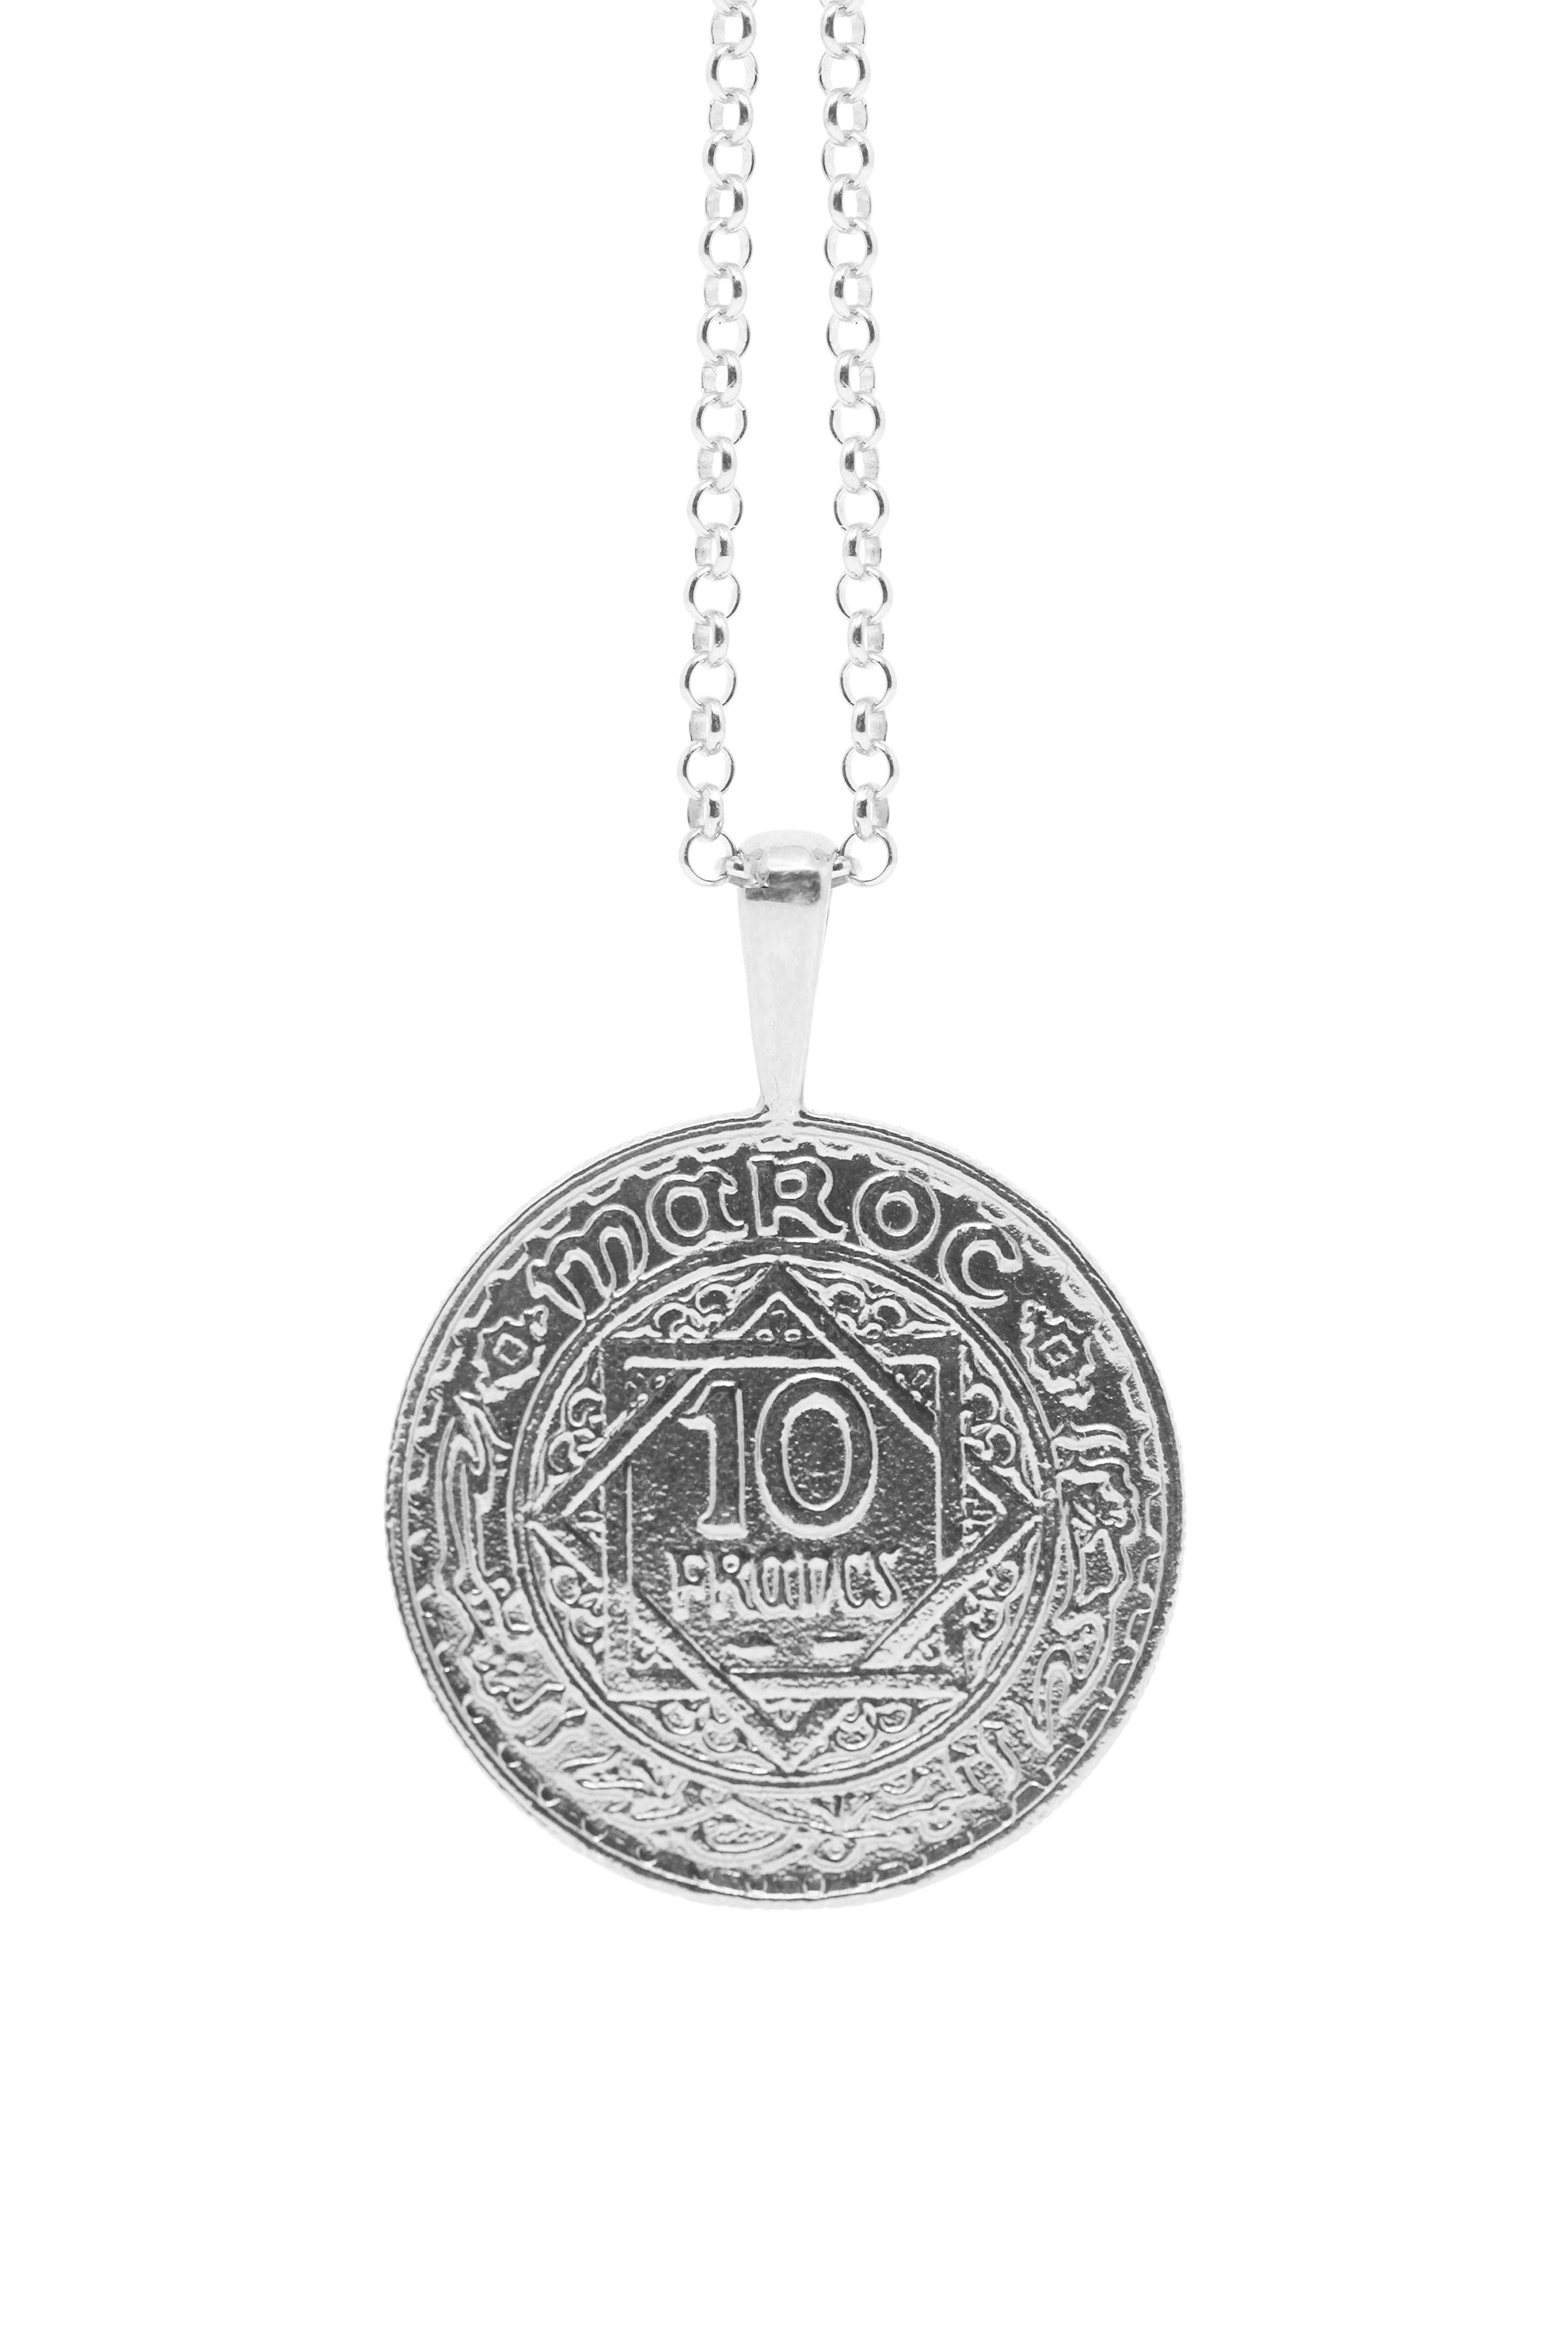 THE MOROCCO Coin Necklace in Silver